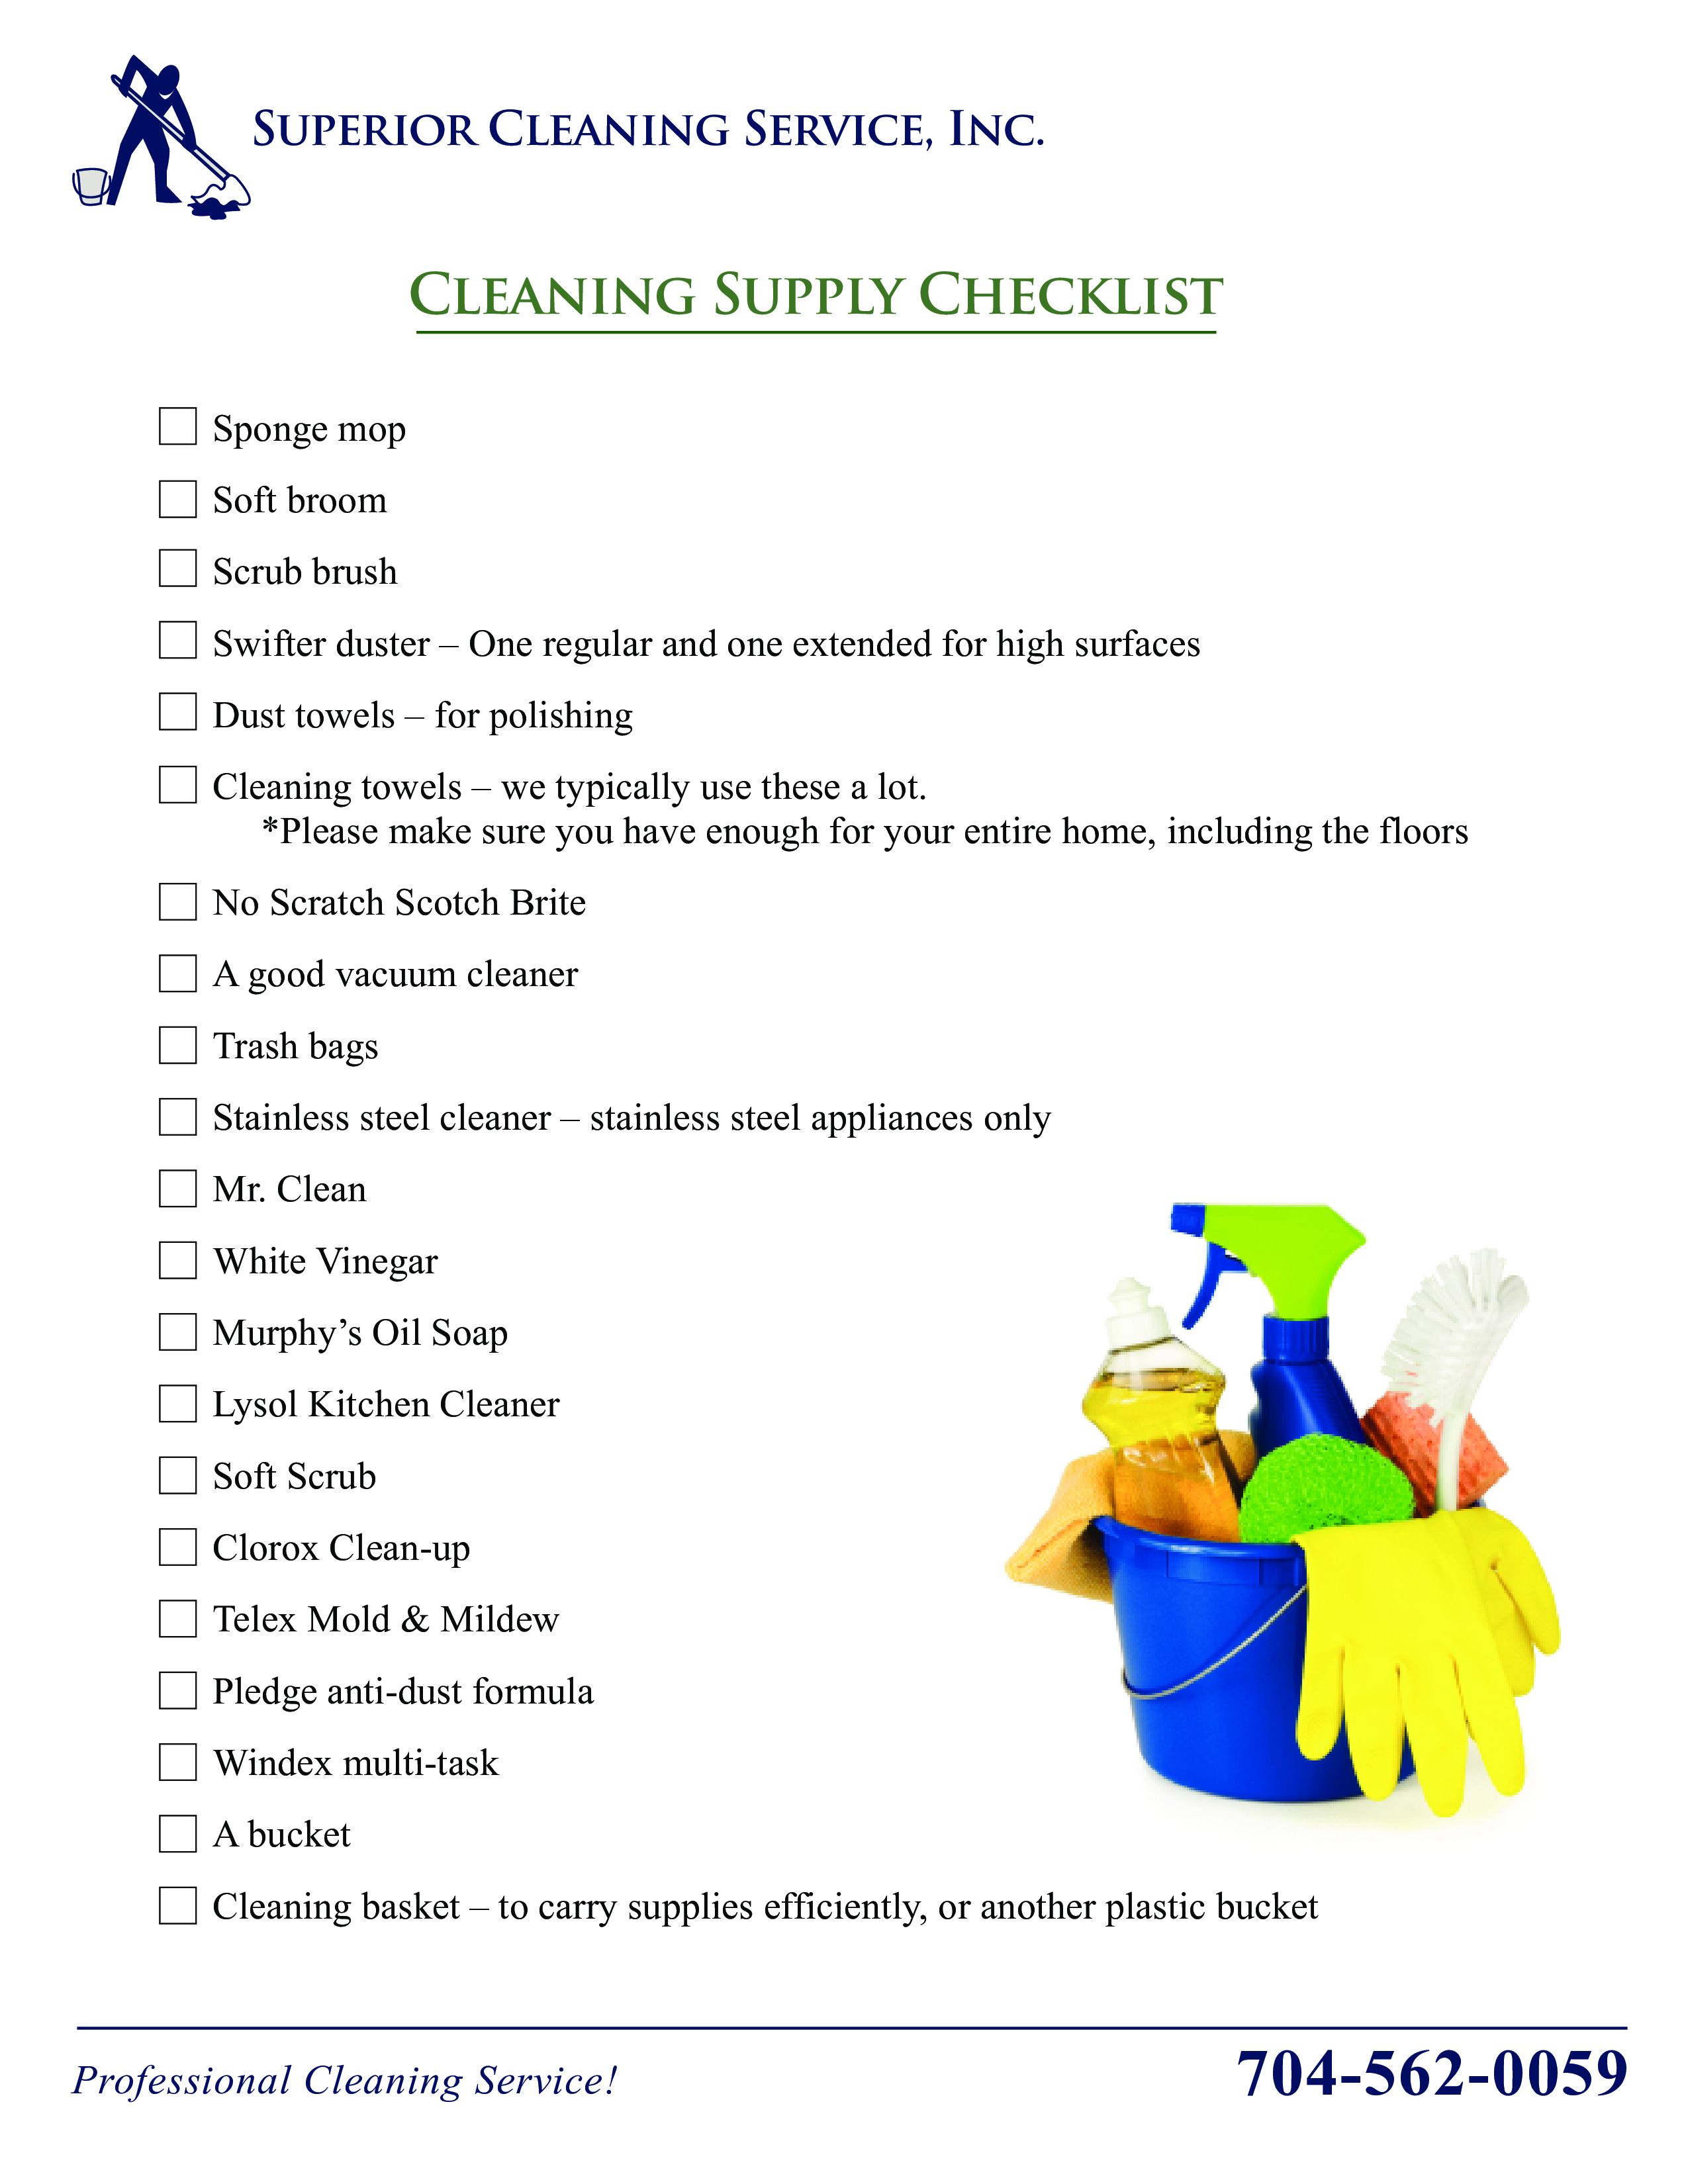 Cleaning Supply Checklist Main Image Template